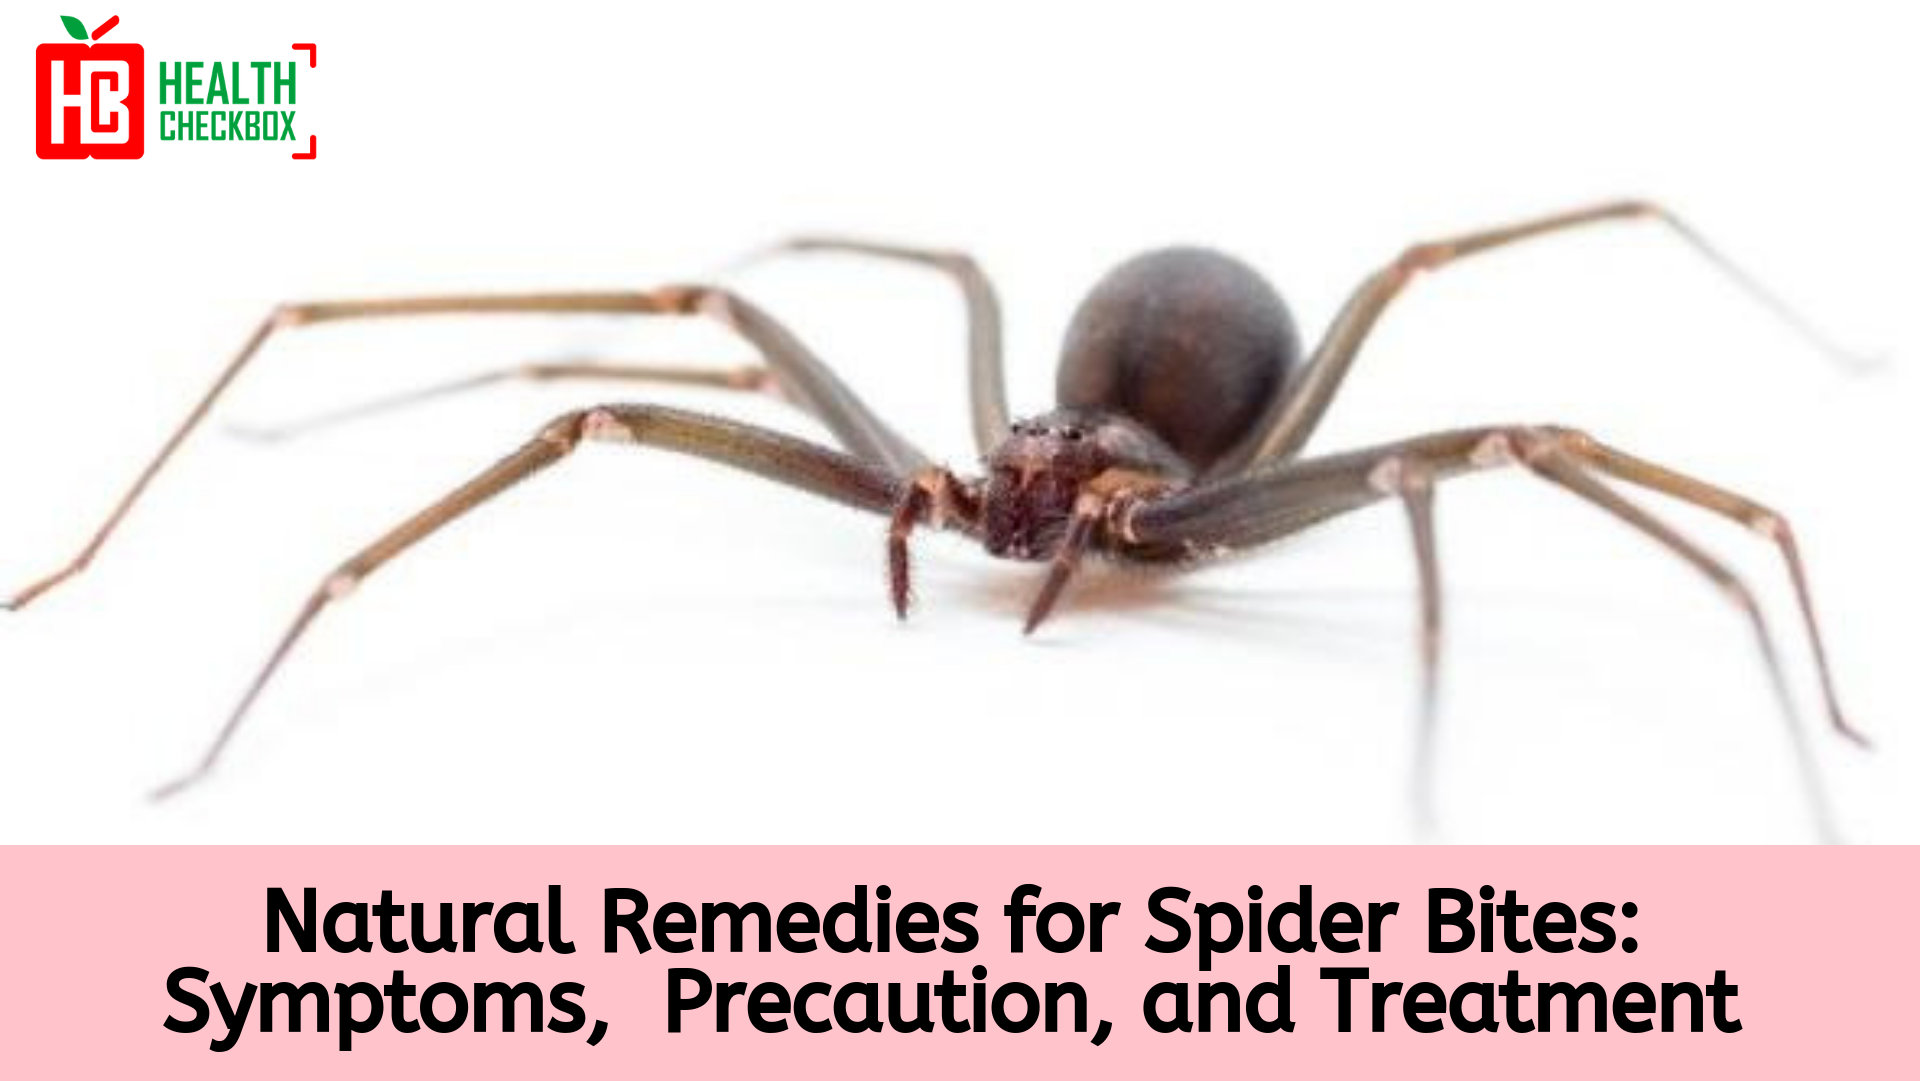 Natural remedies for spider bites